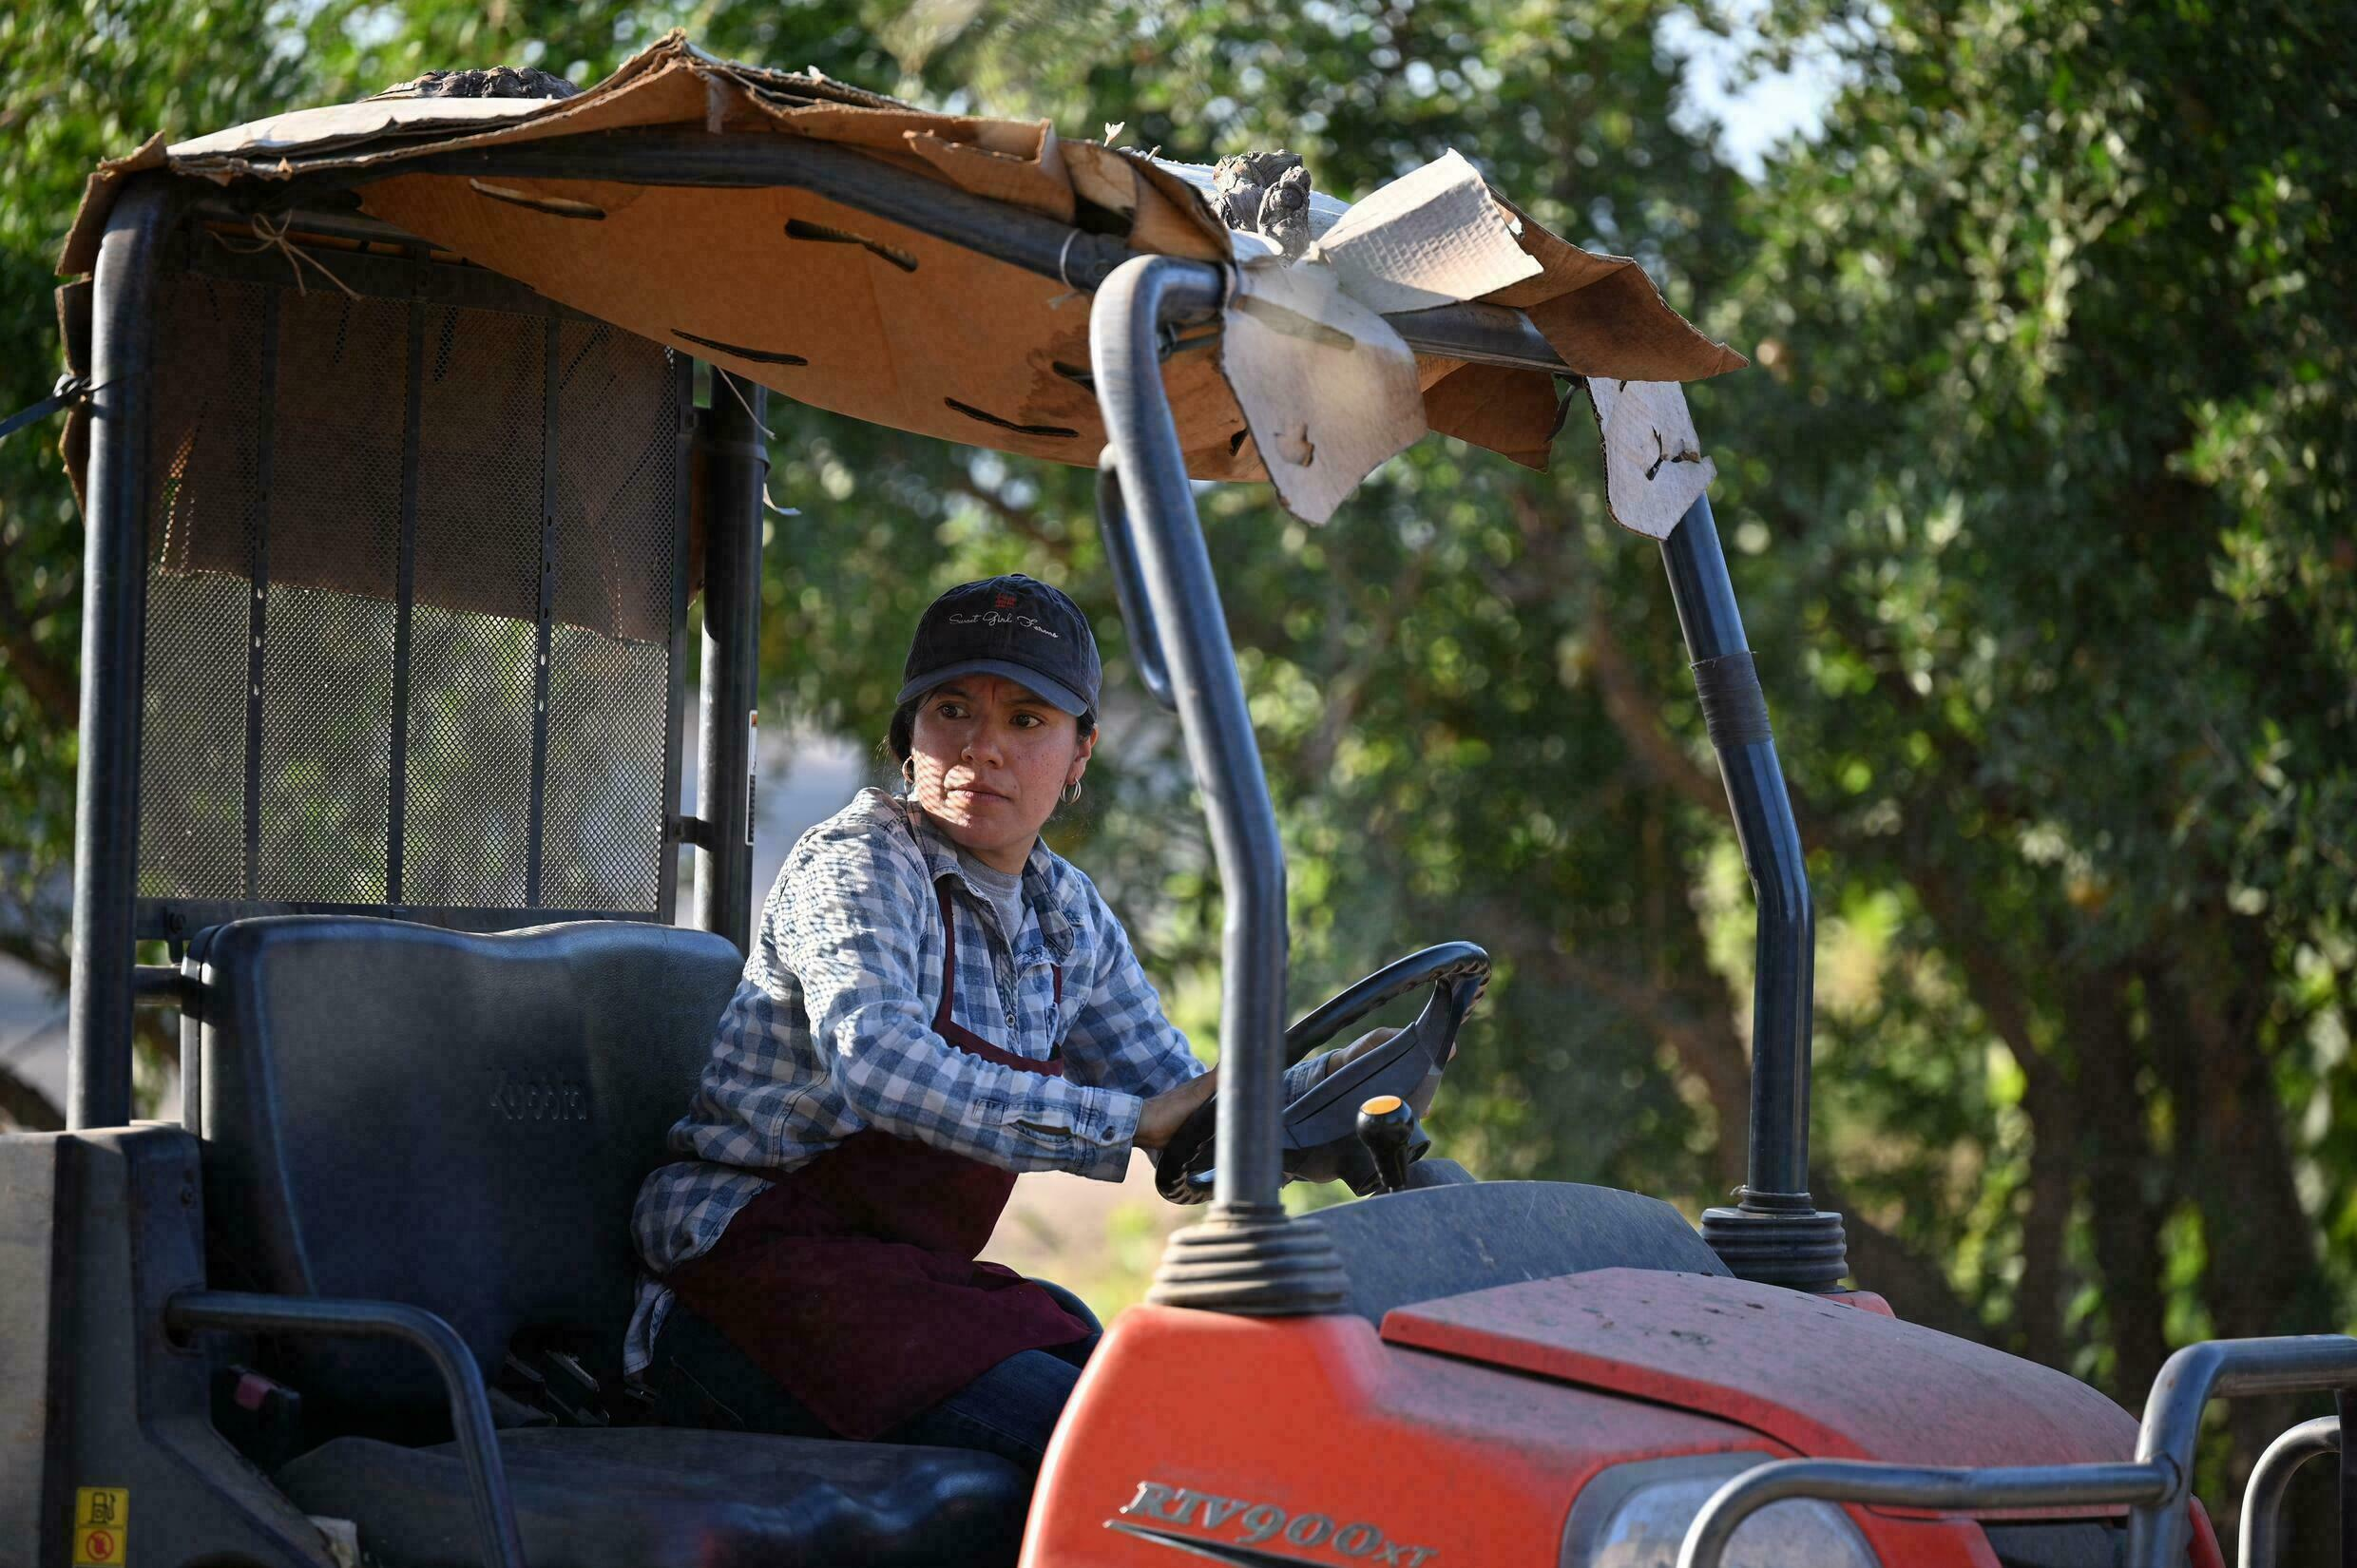 Liset Garcia drives a tractor on her farm in Reedley, California -- the drought situation, she says, is 'pretty terrible'